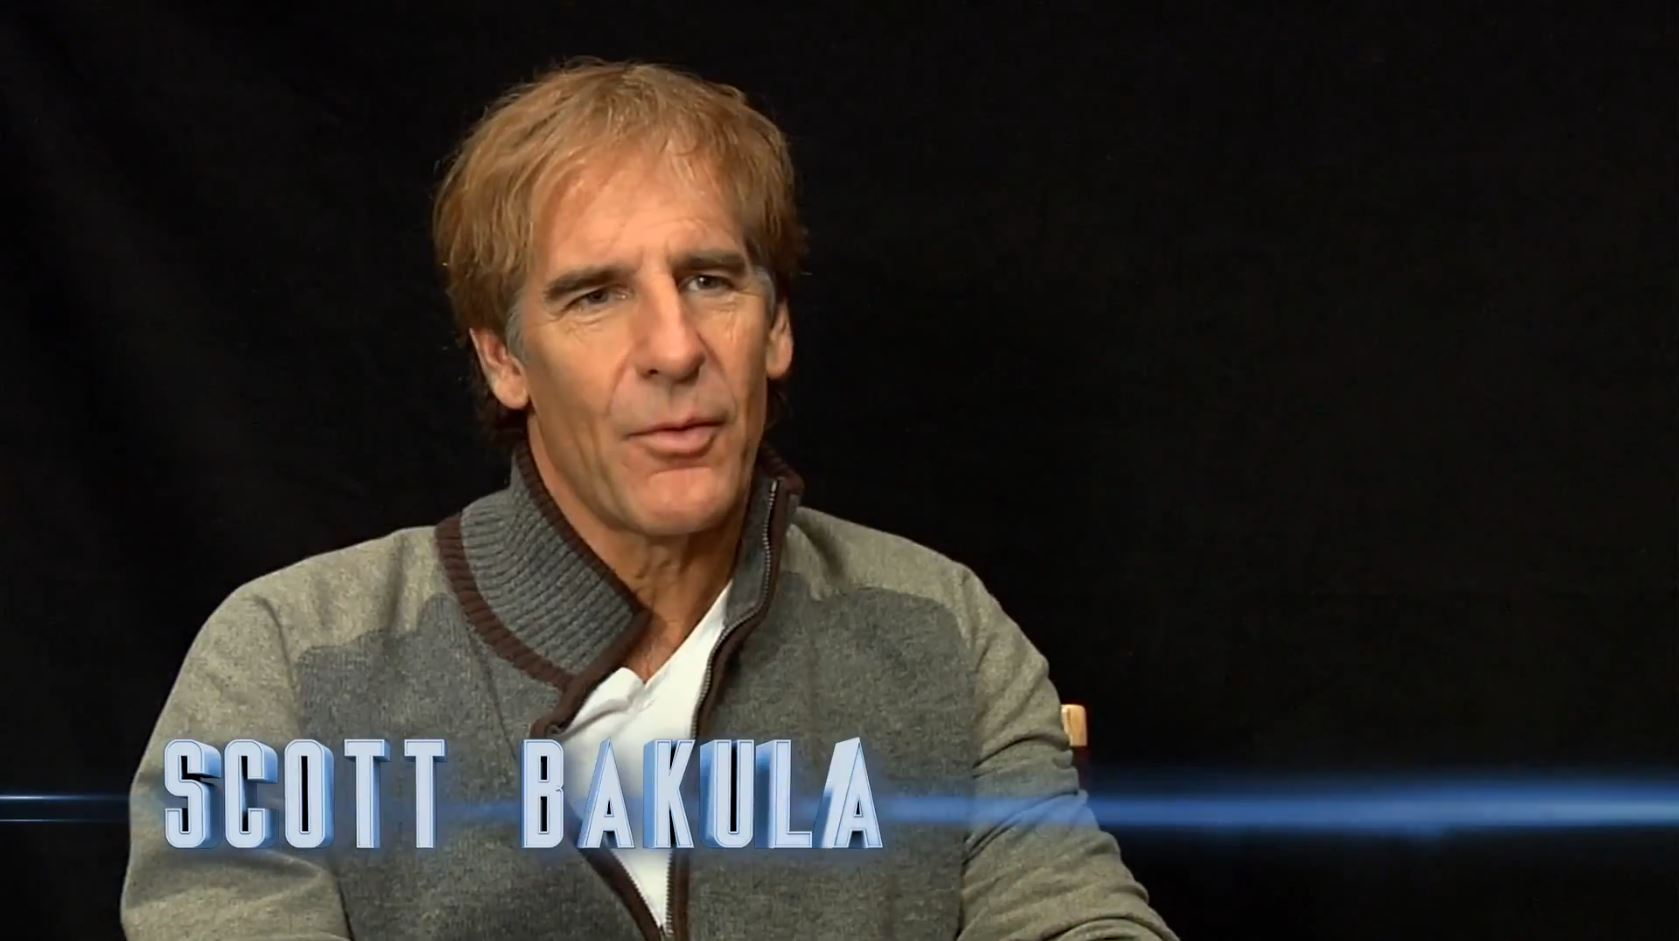 Enterprise season 4 - Scott Bakula 2013